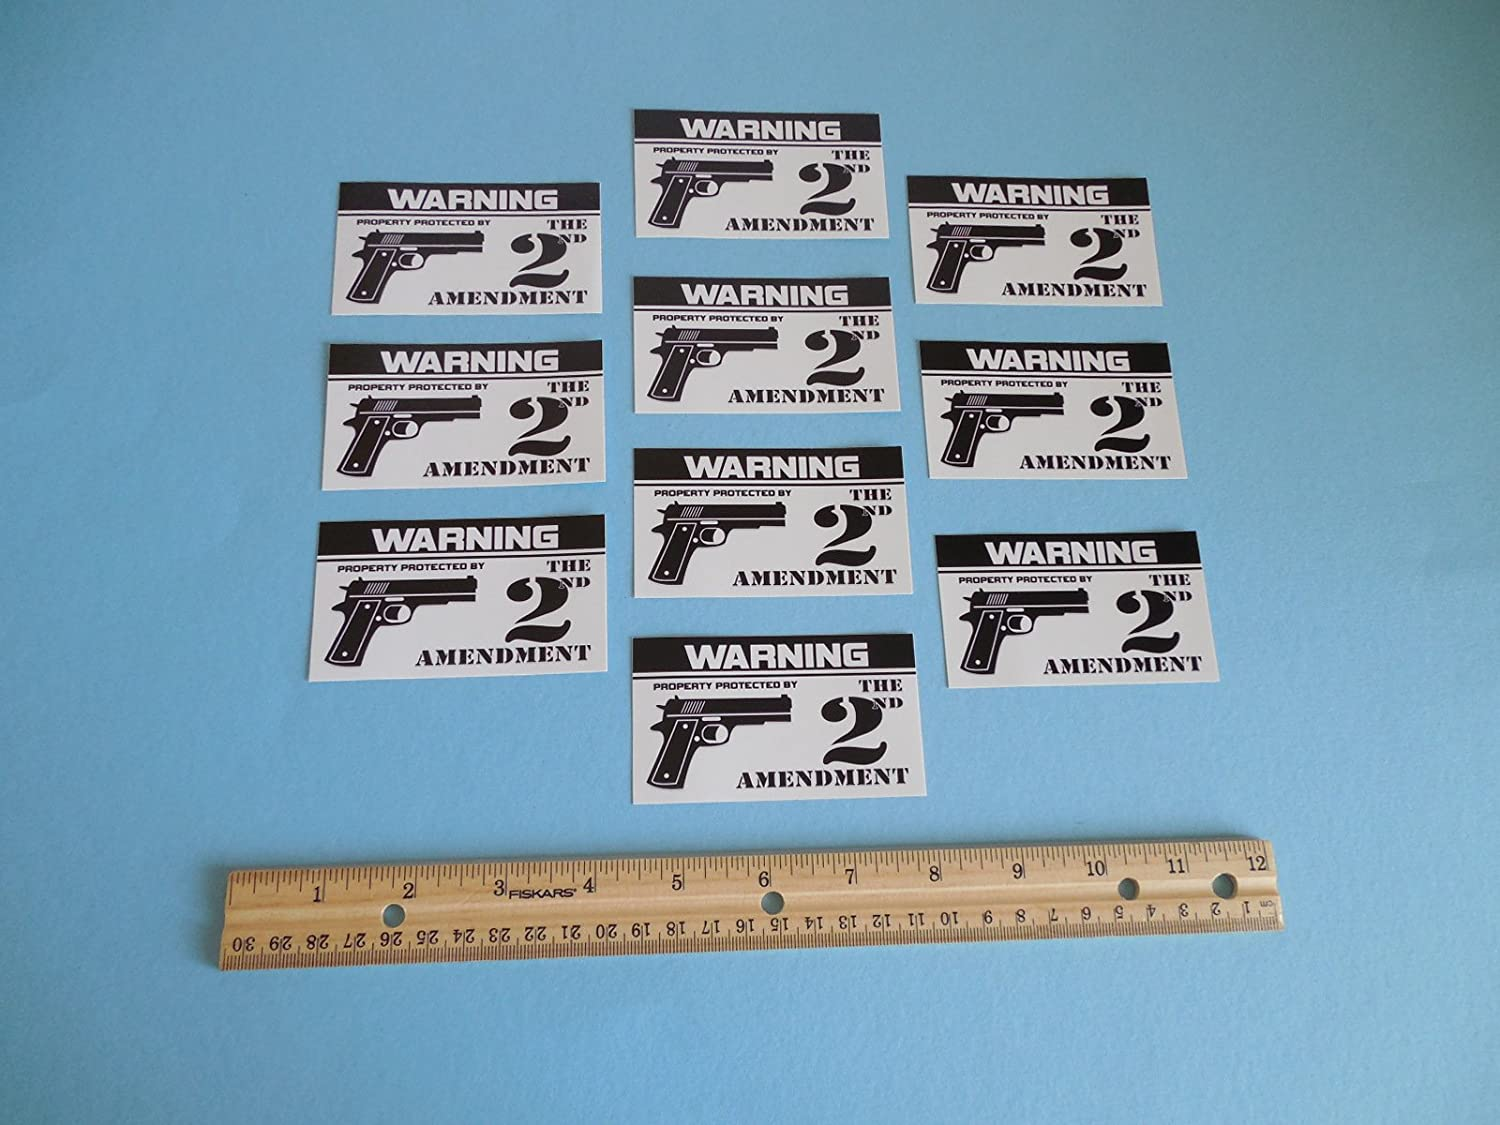 10 Warning Property Protected by 2nd Amendment Home Security System Window Decals Stickers - Stock # 723